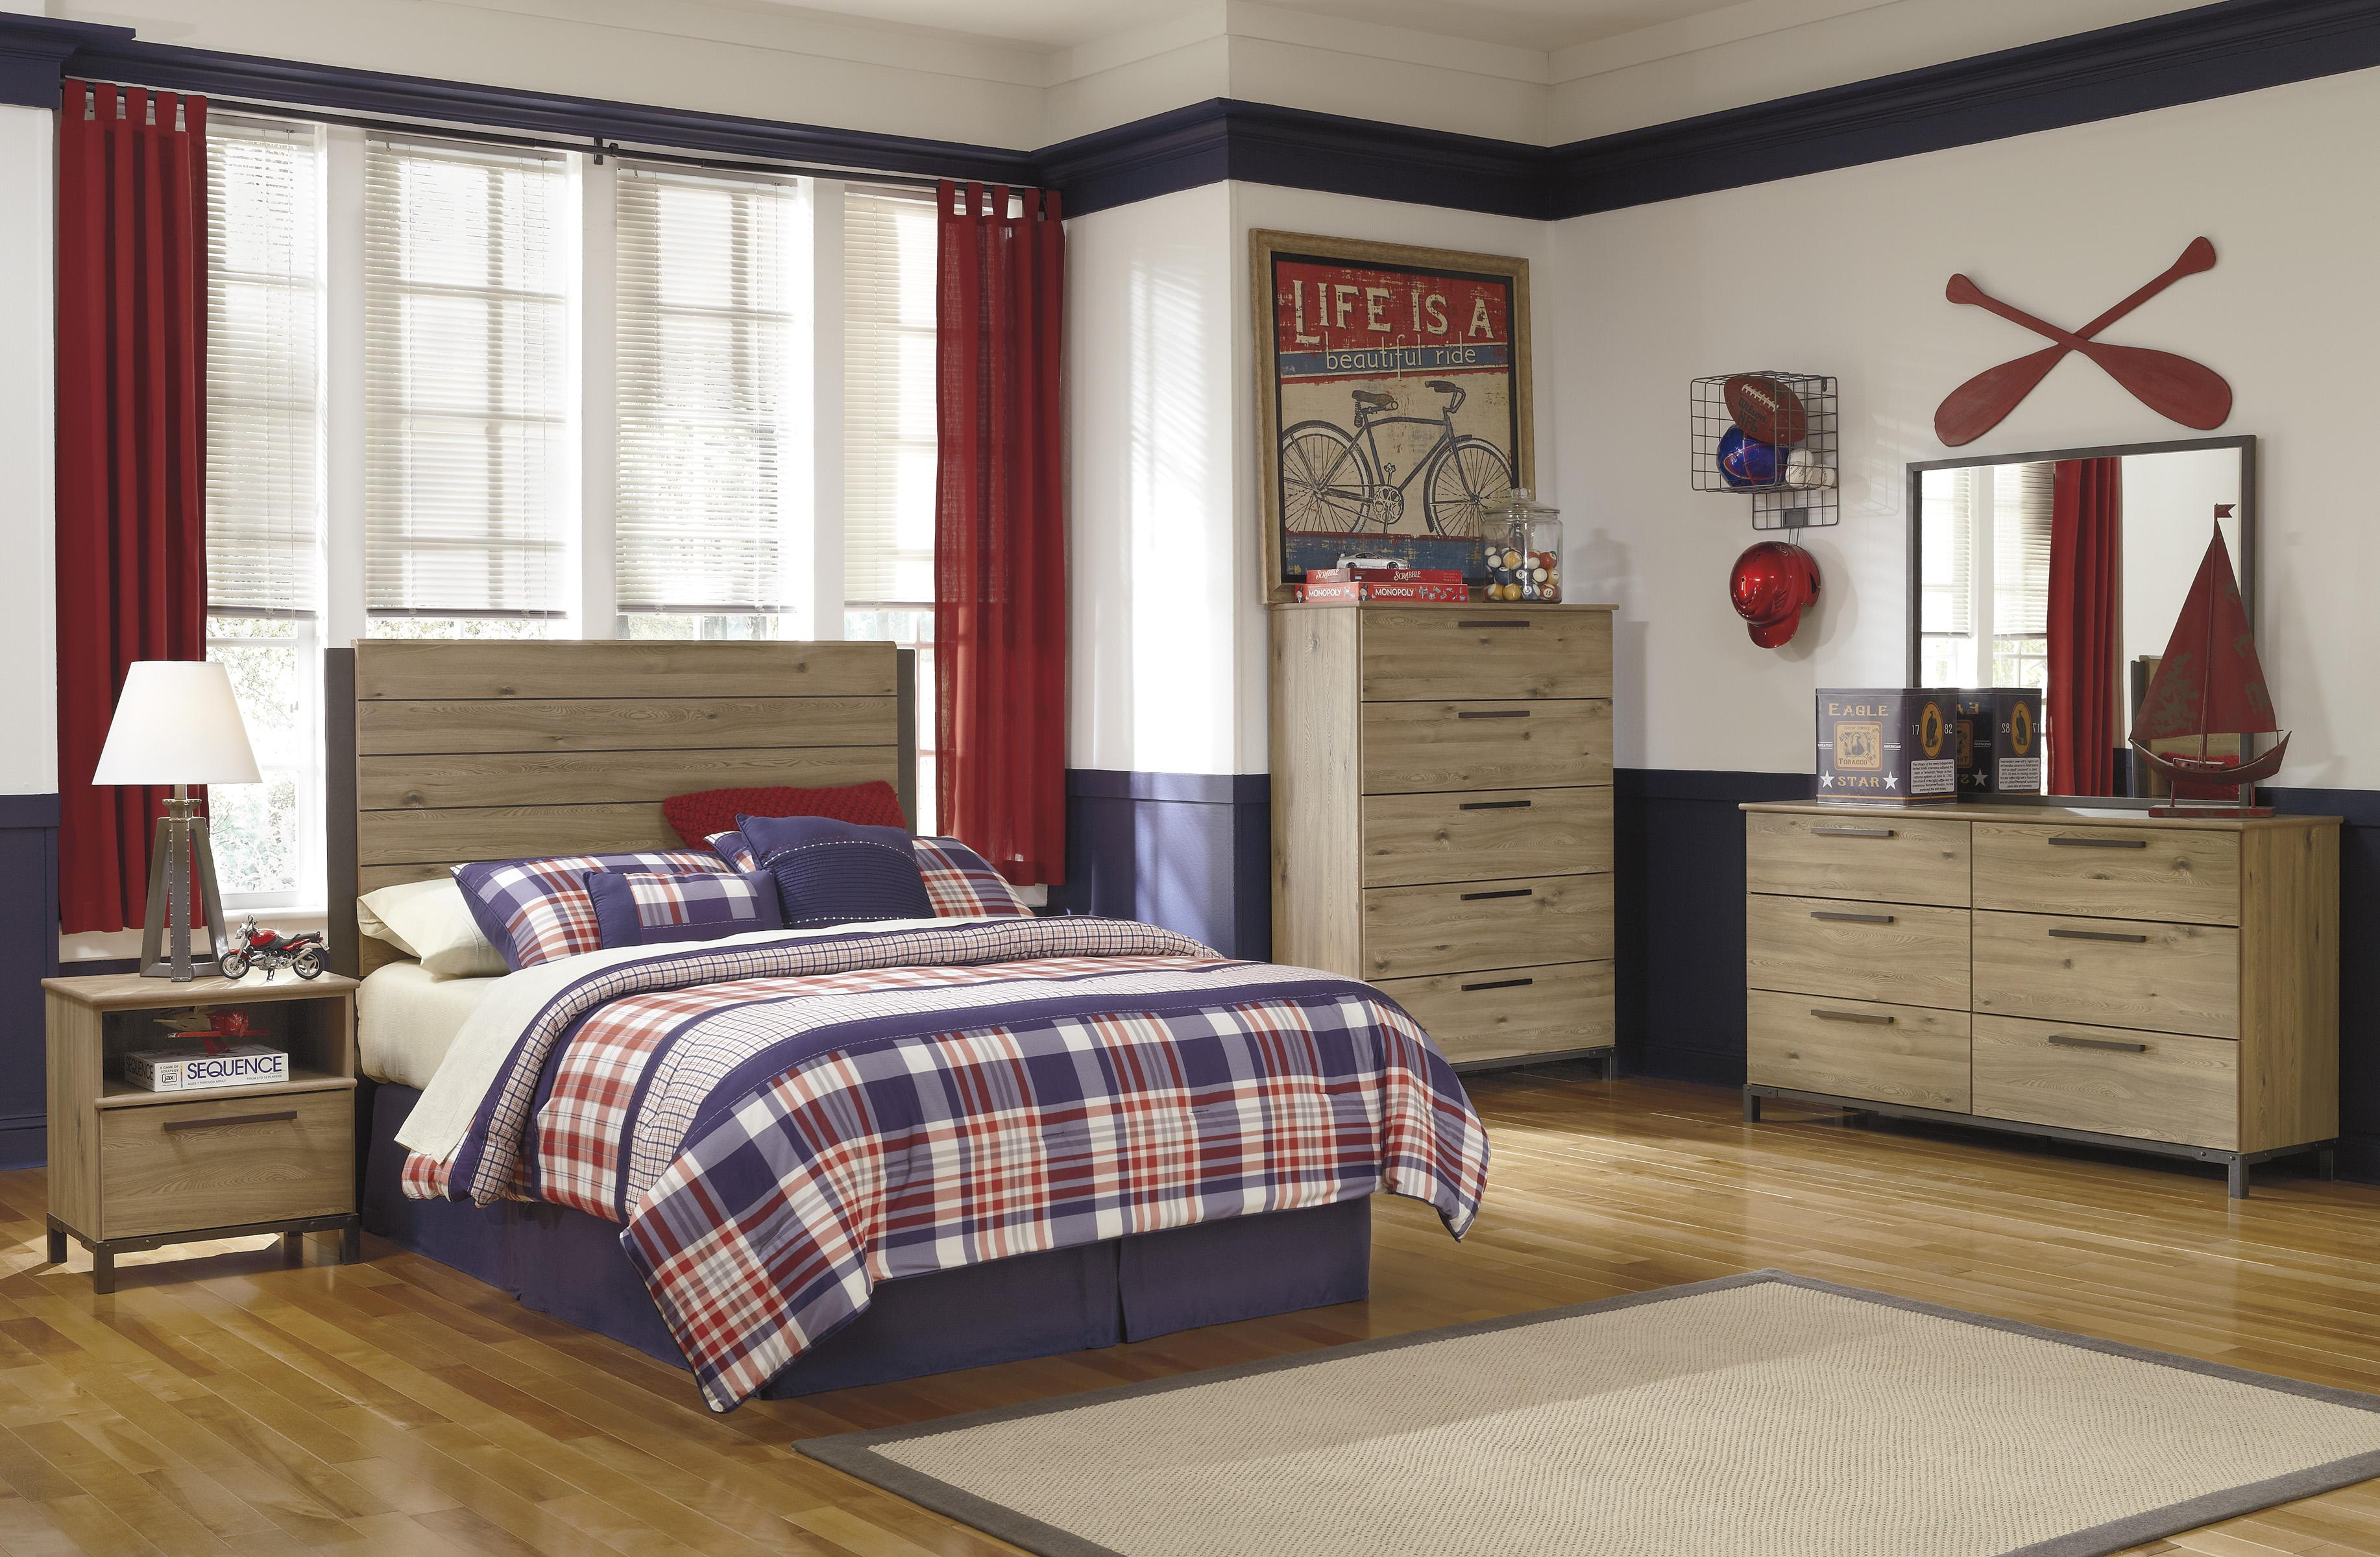 Signature Design by Ashley Dexifield Full Bedroom Group - Item Number: B298 F Bedroom Group 2